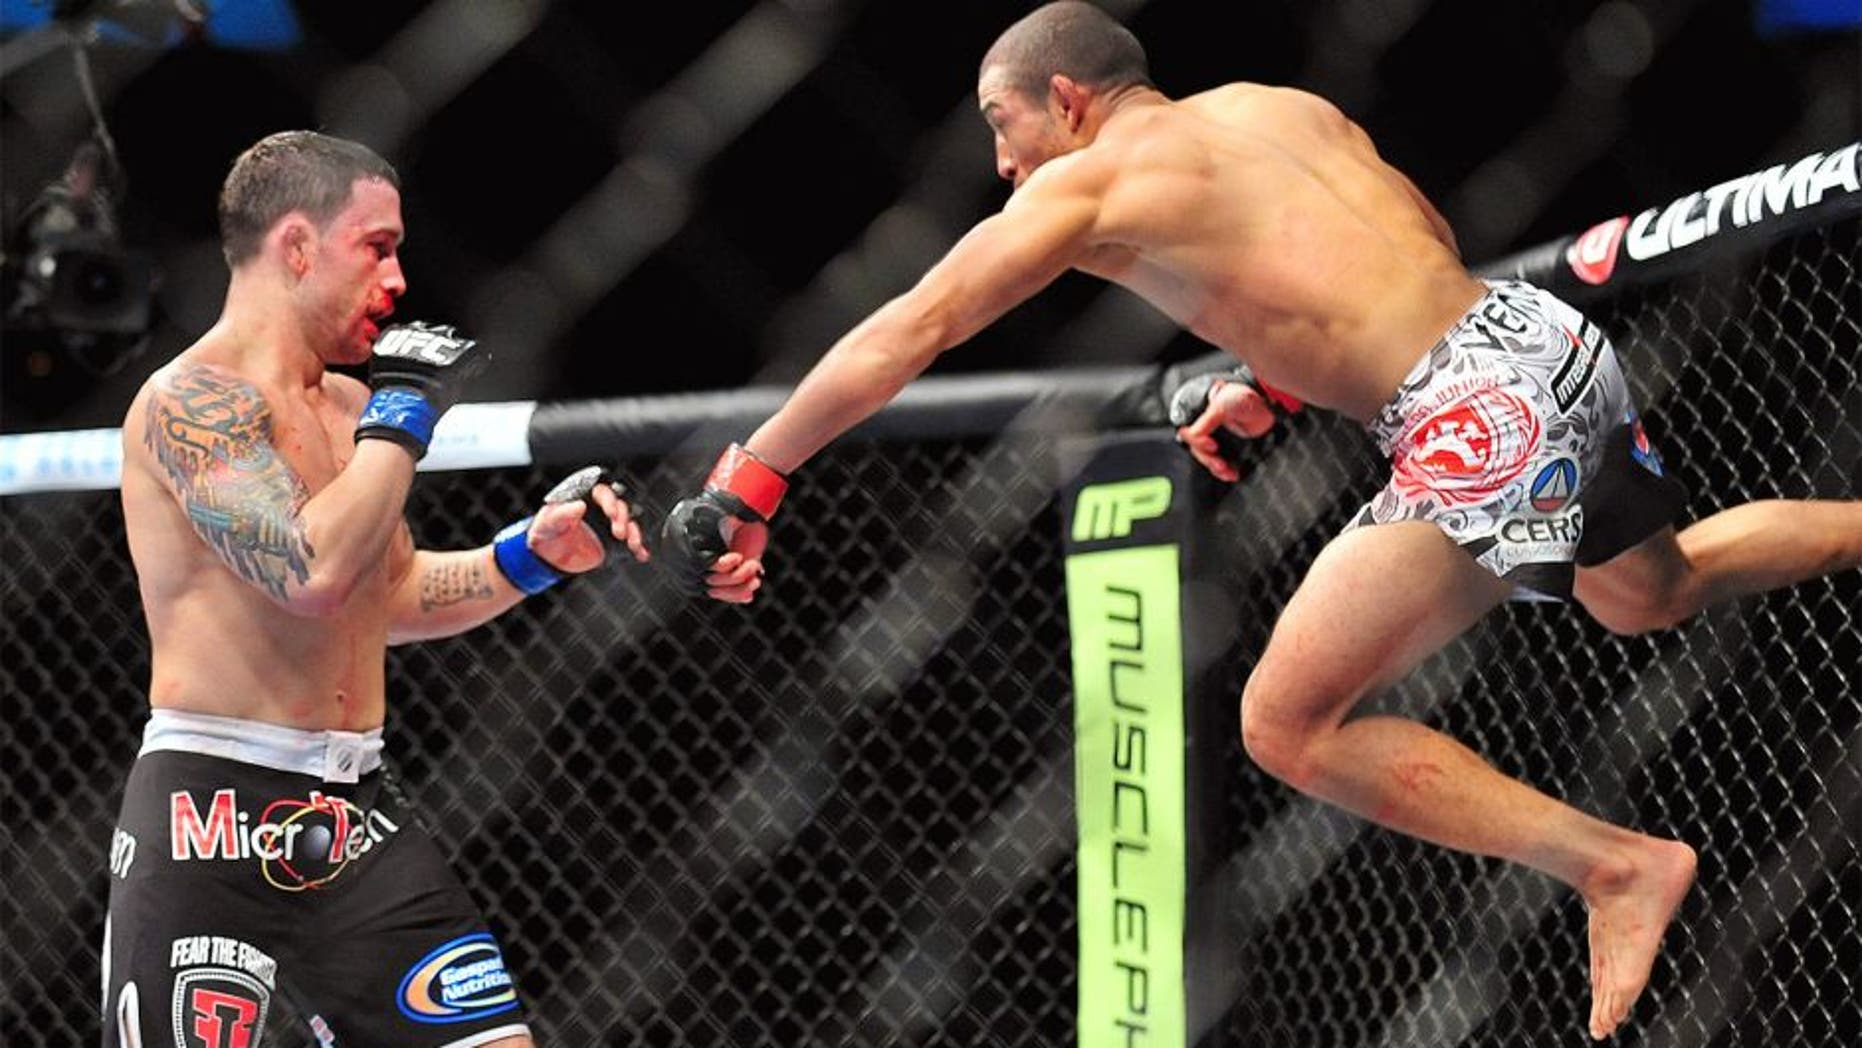 Feb 2, 2013; Las Vegas, NV, USA; Frankie Edgar (left) and Jose Aldo (right) battle each other during UFC 156 at the Mandalay Bay Events Center. Mandatory Credit: Gary A. Vasquez-USA TODAY Sports